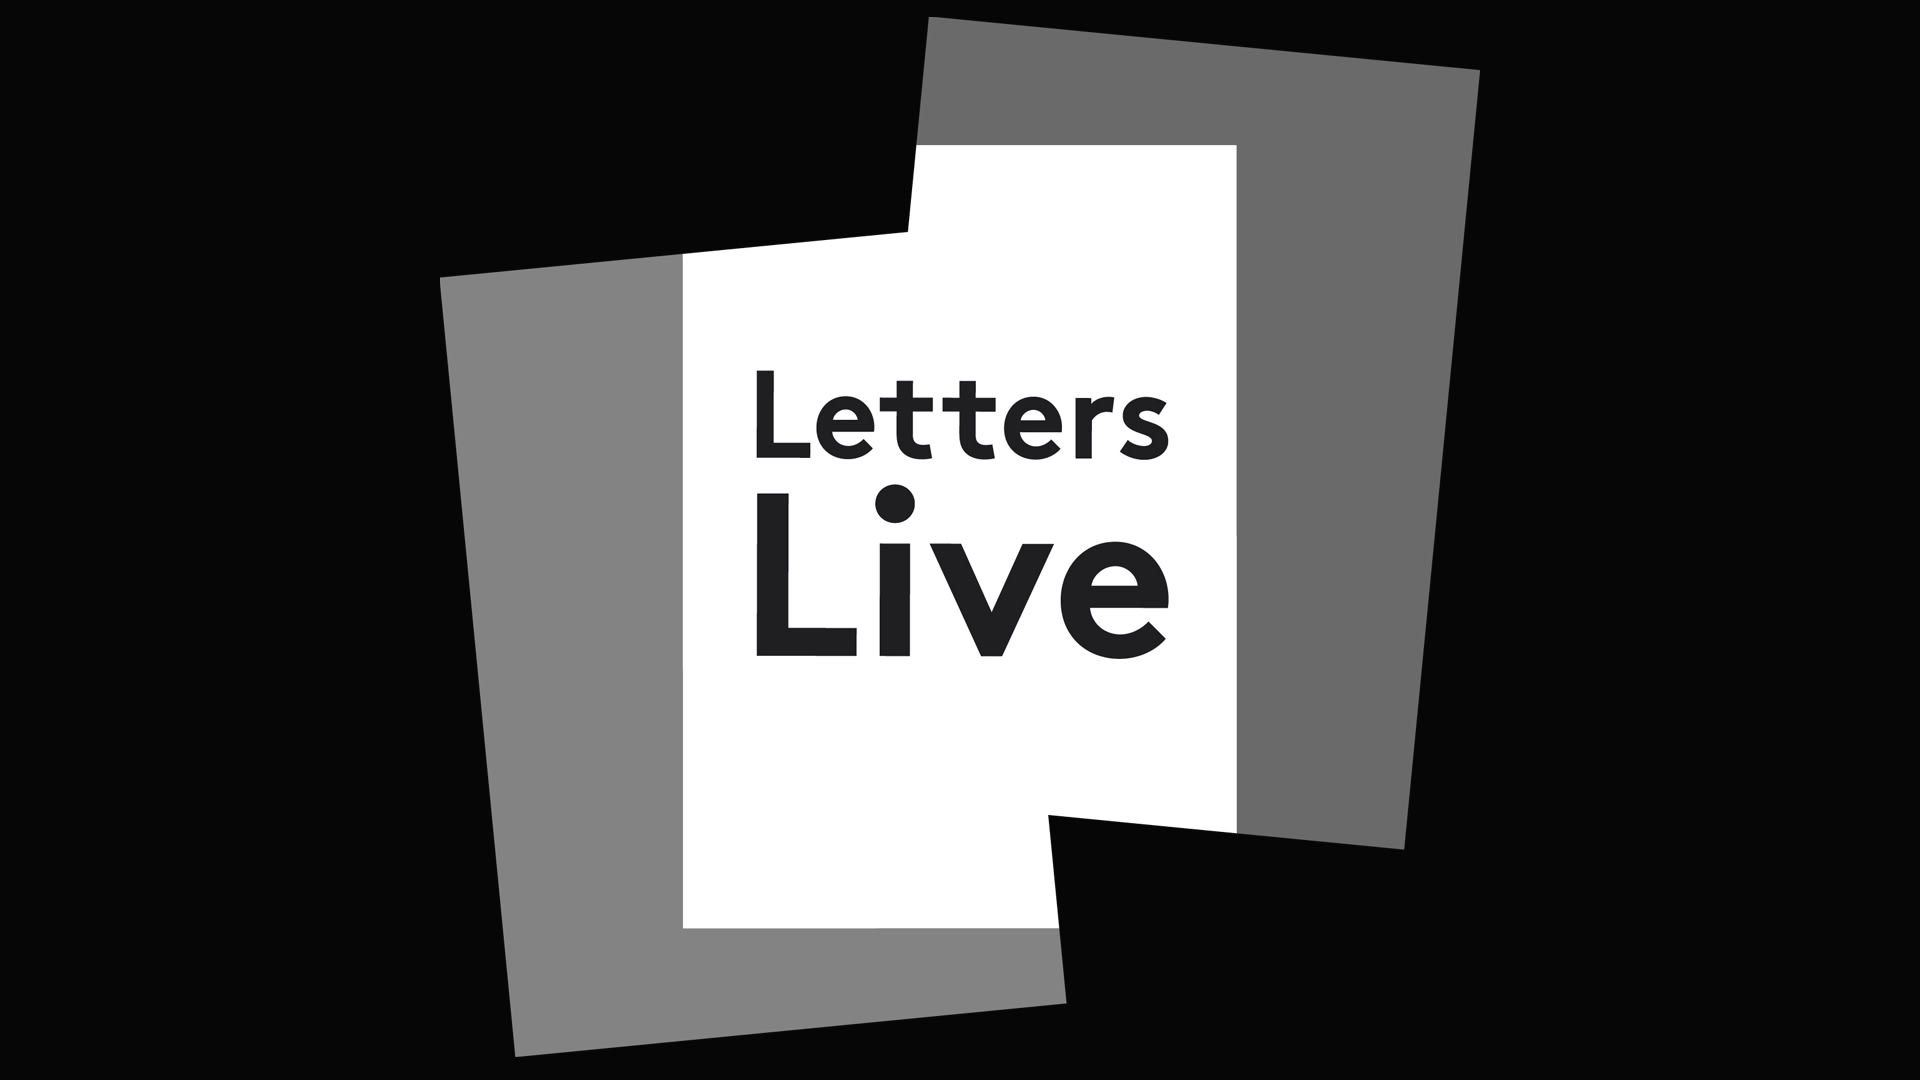 Letters Live at Palace Theatre Manchester